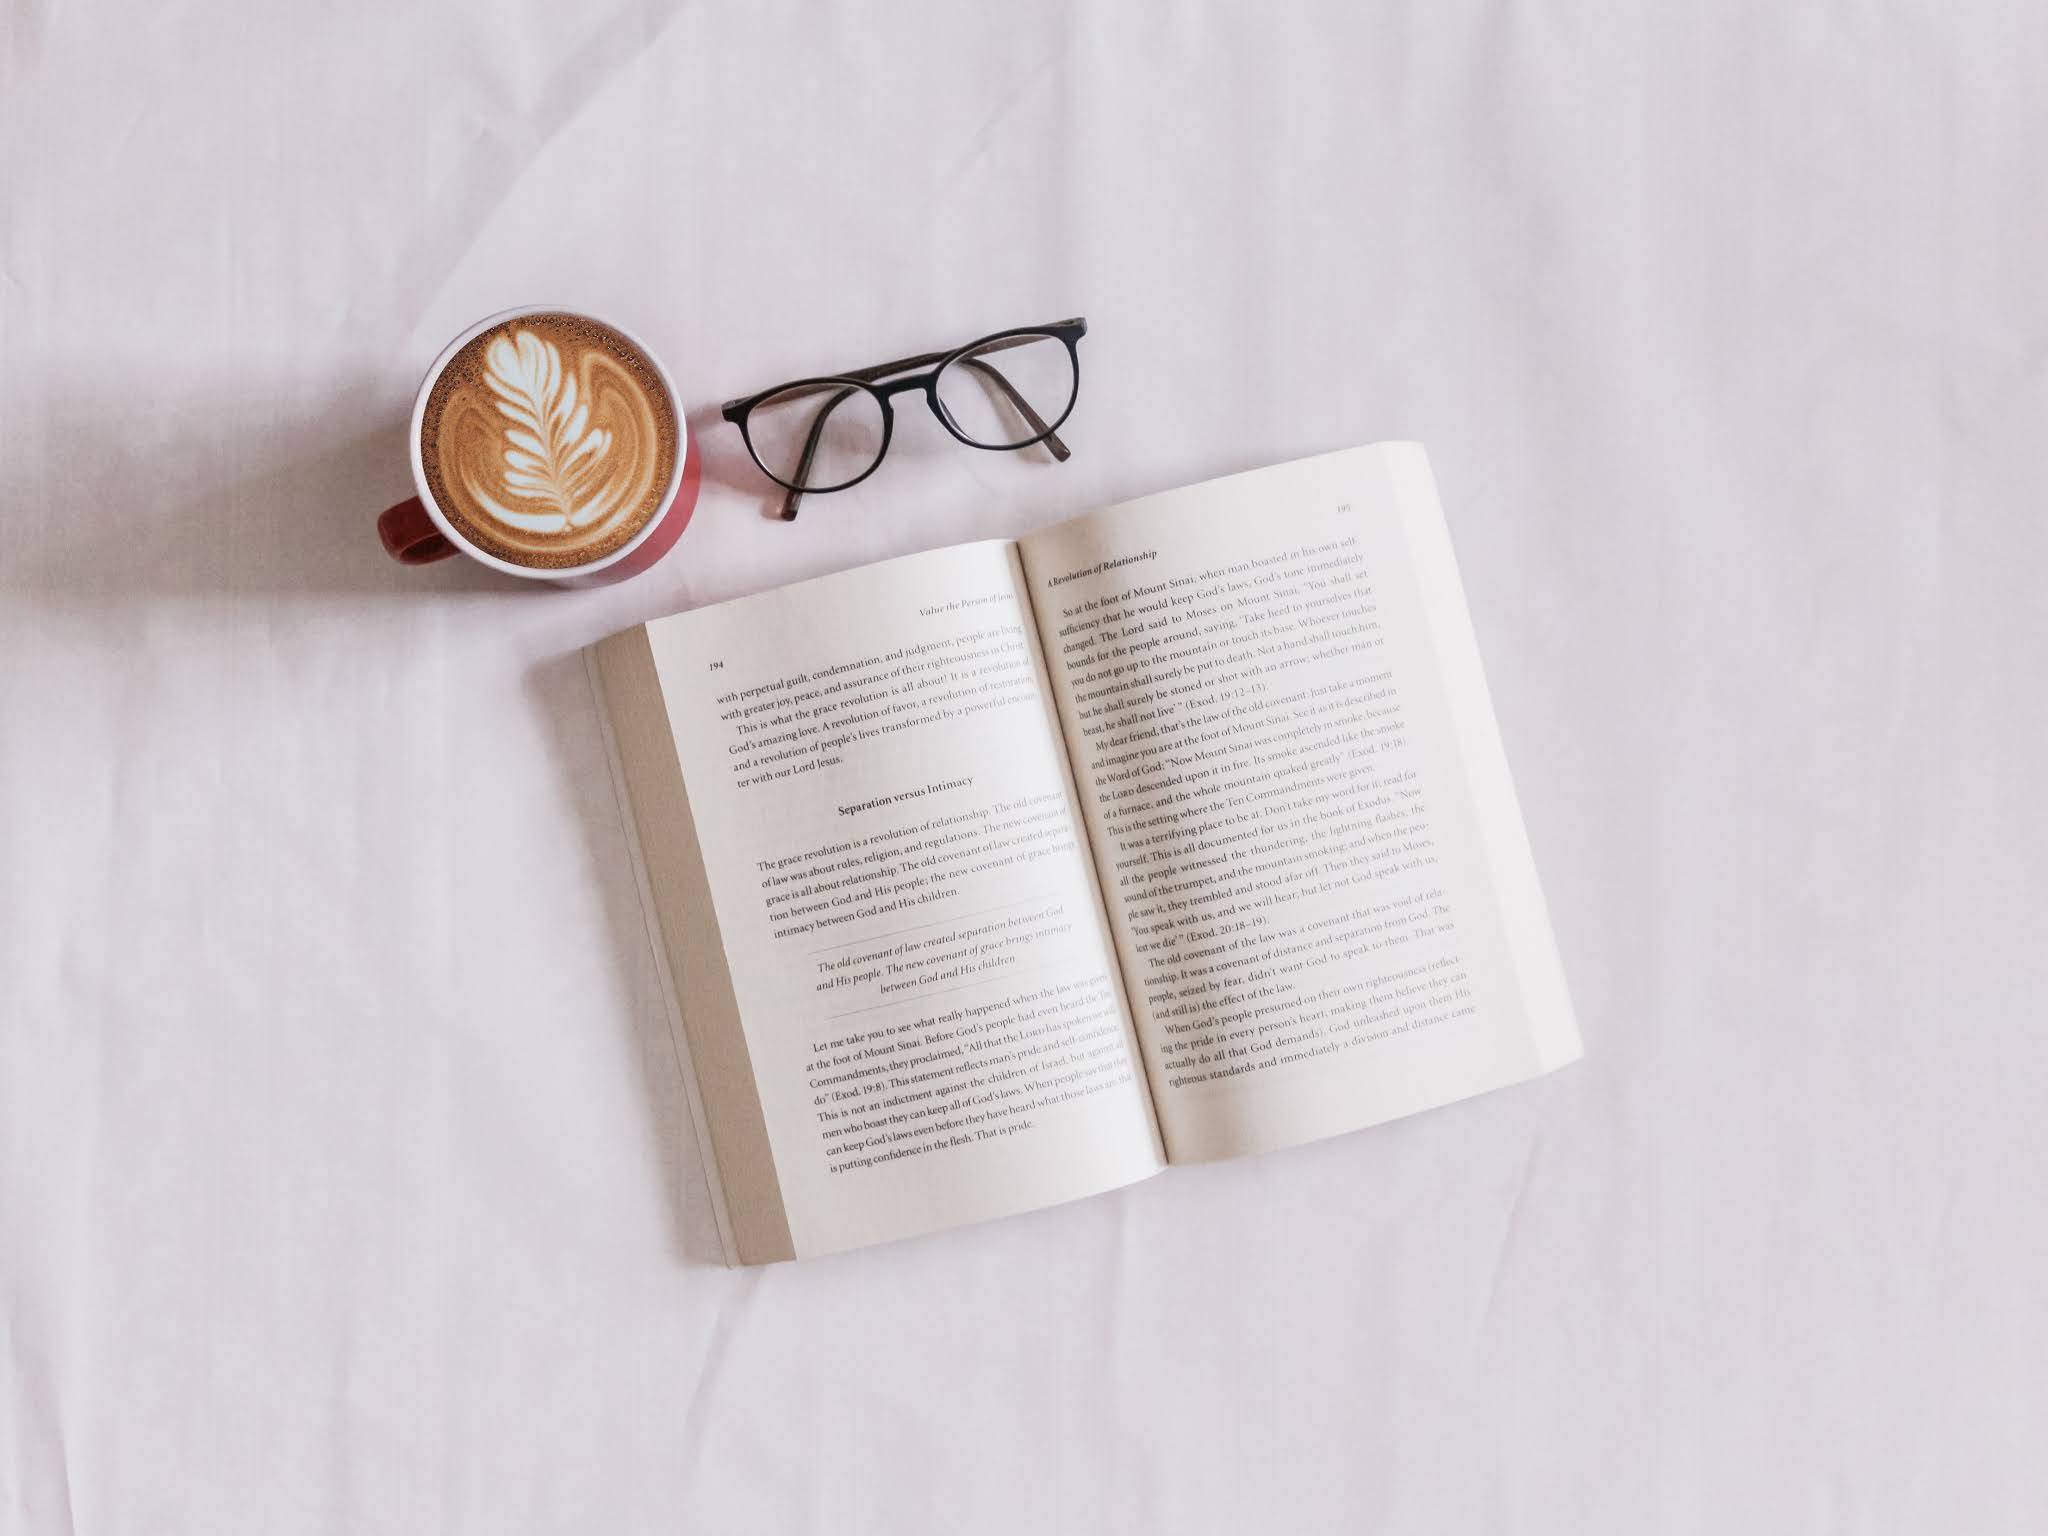 book near glasses and coffee mug